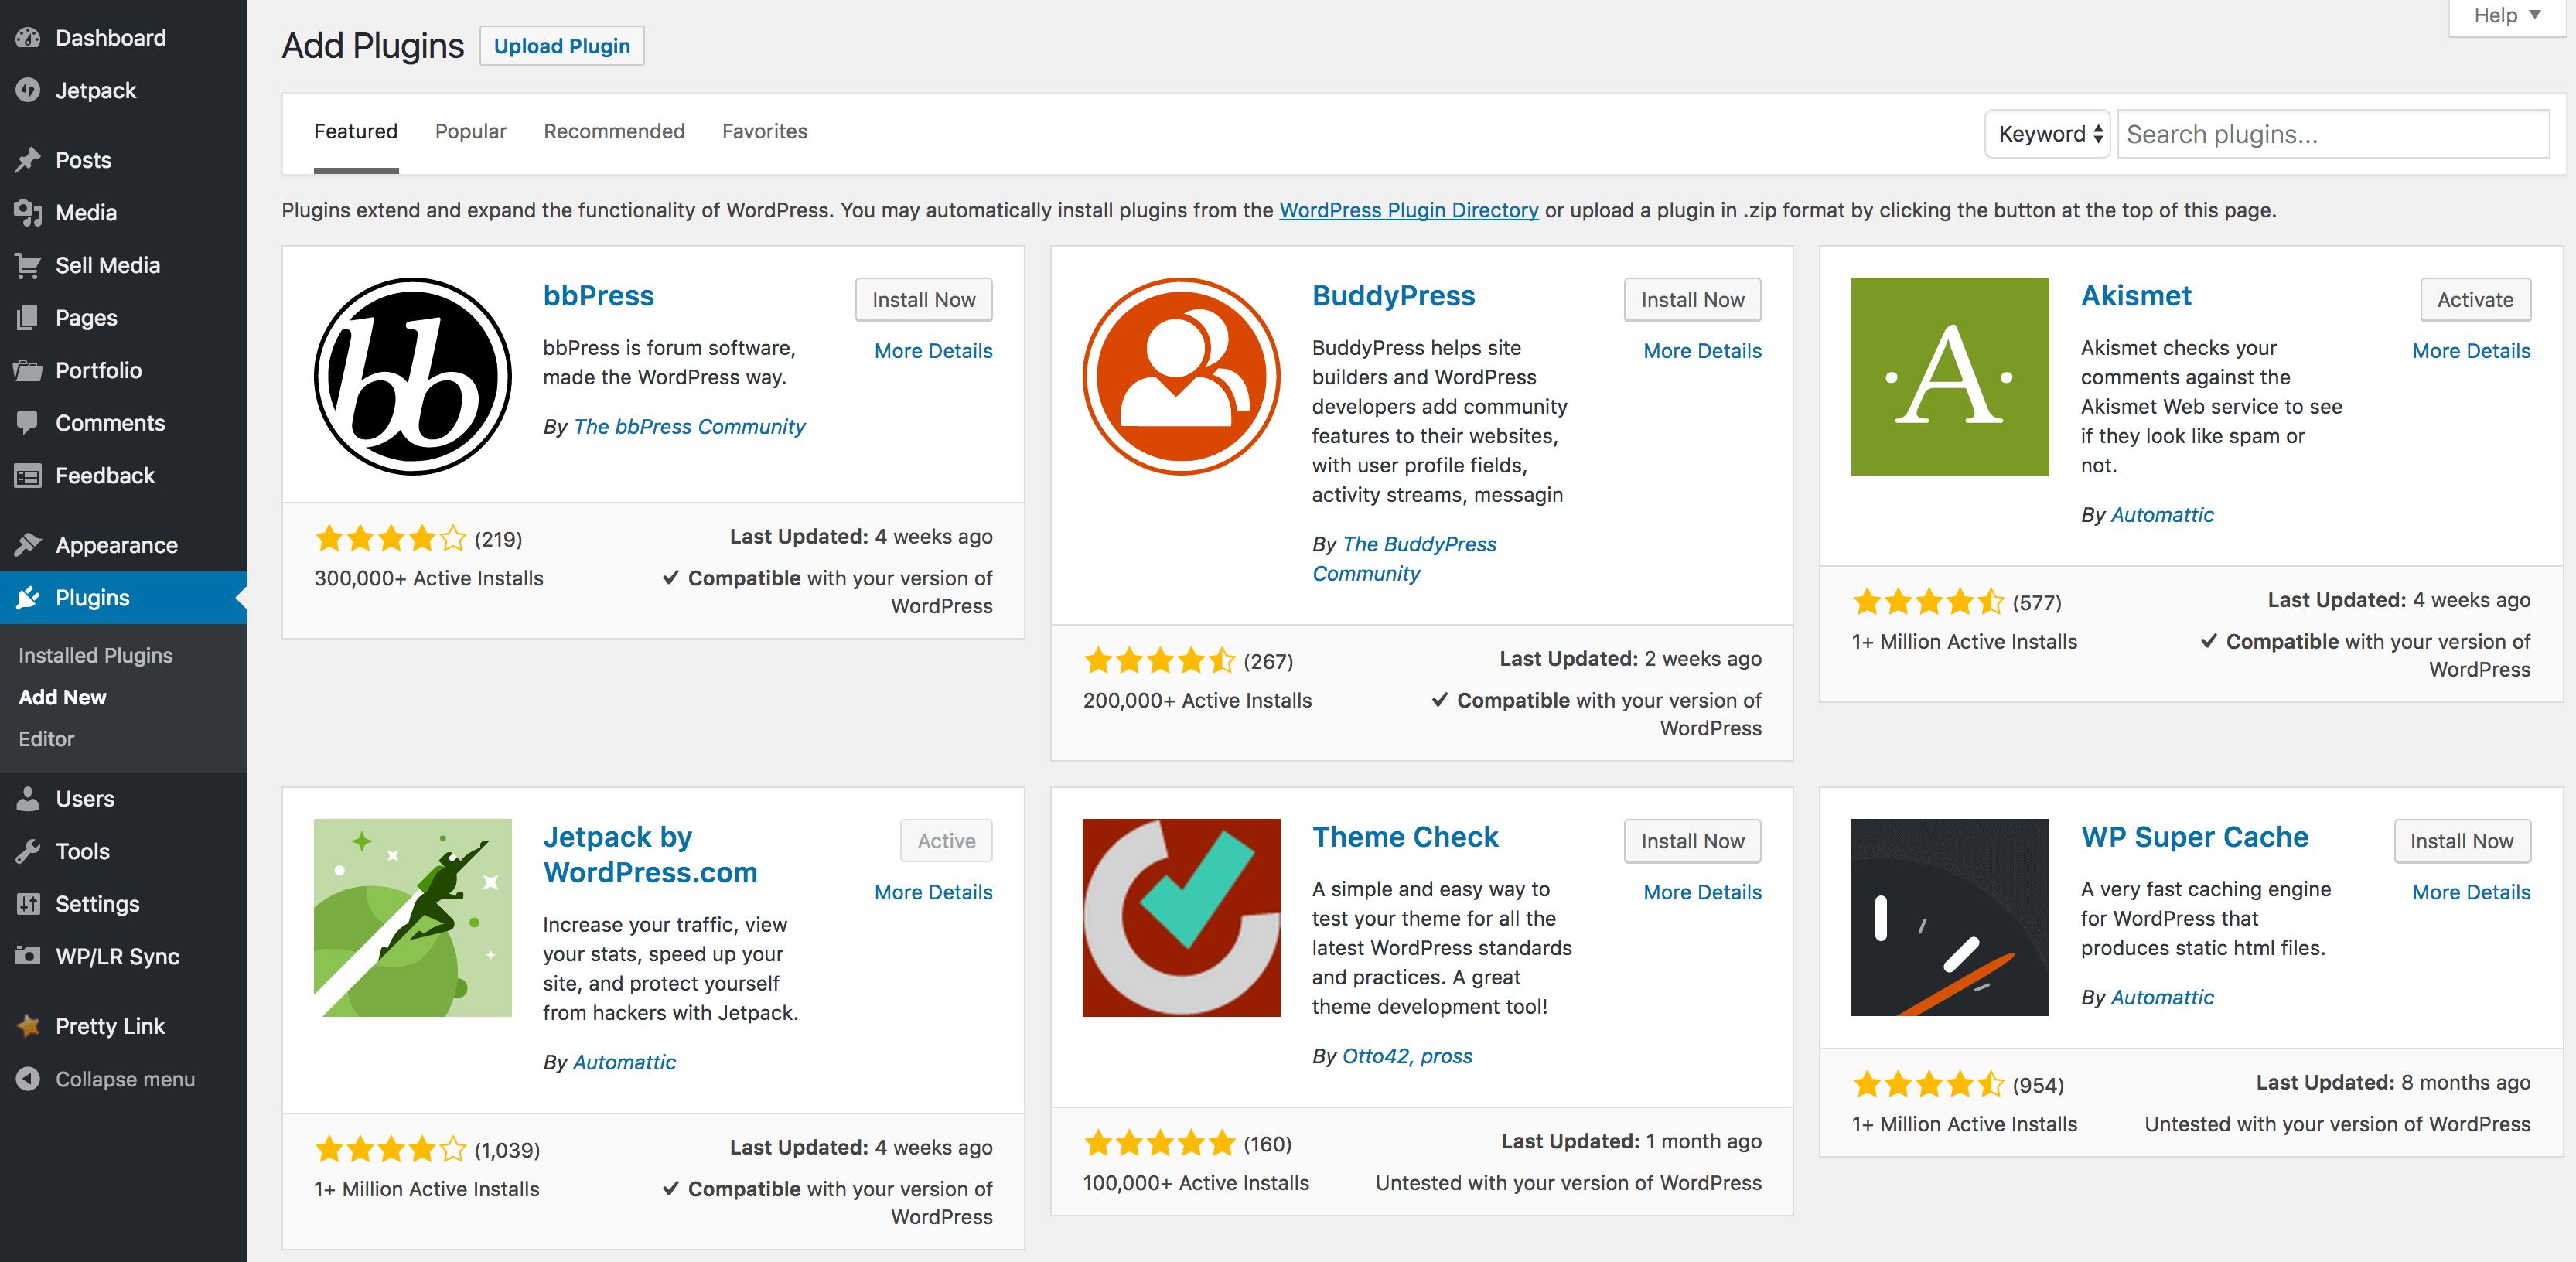 The Add Plugins page.